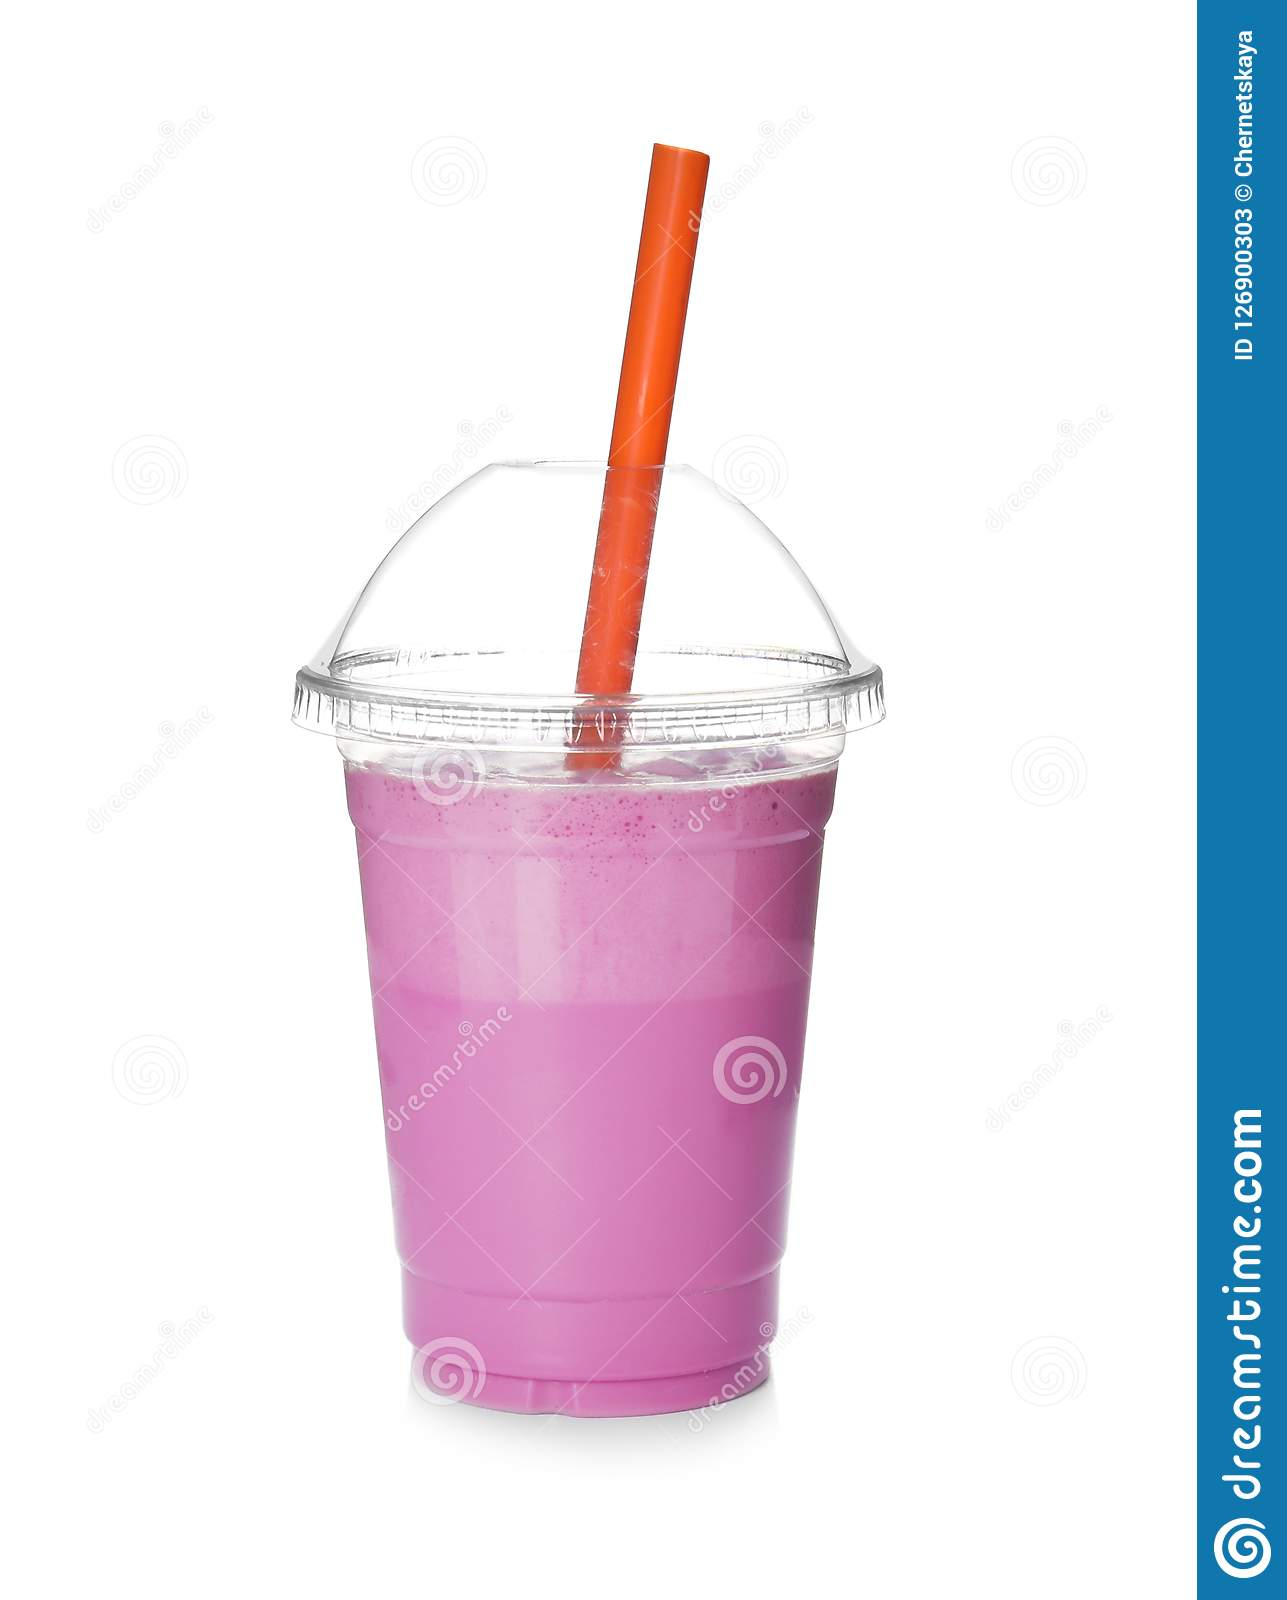 Plastic cup with tasty milk shake